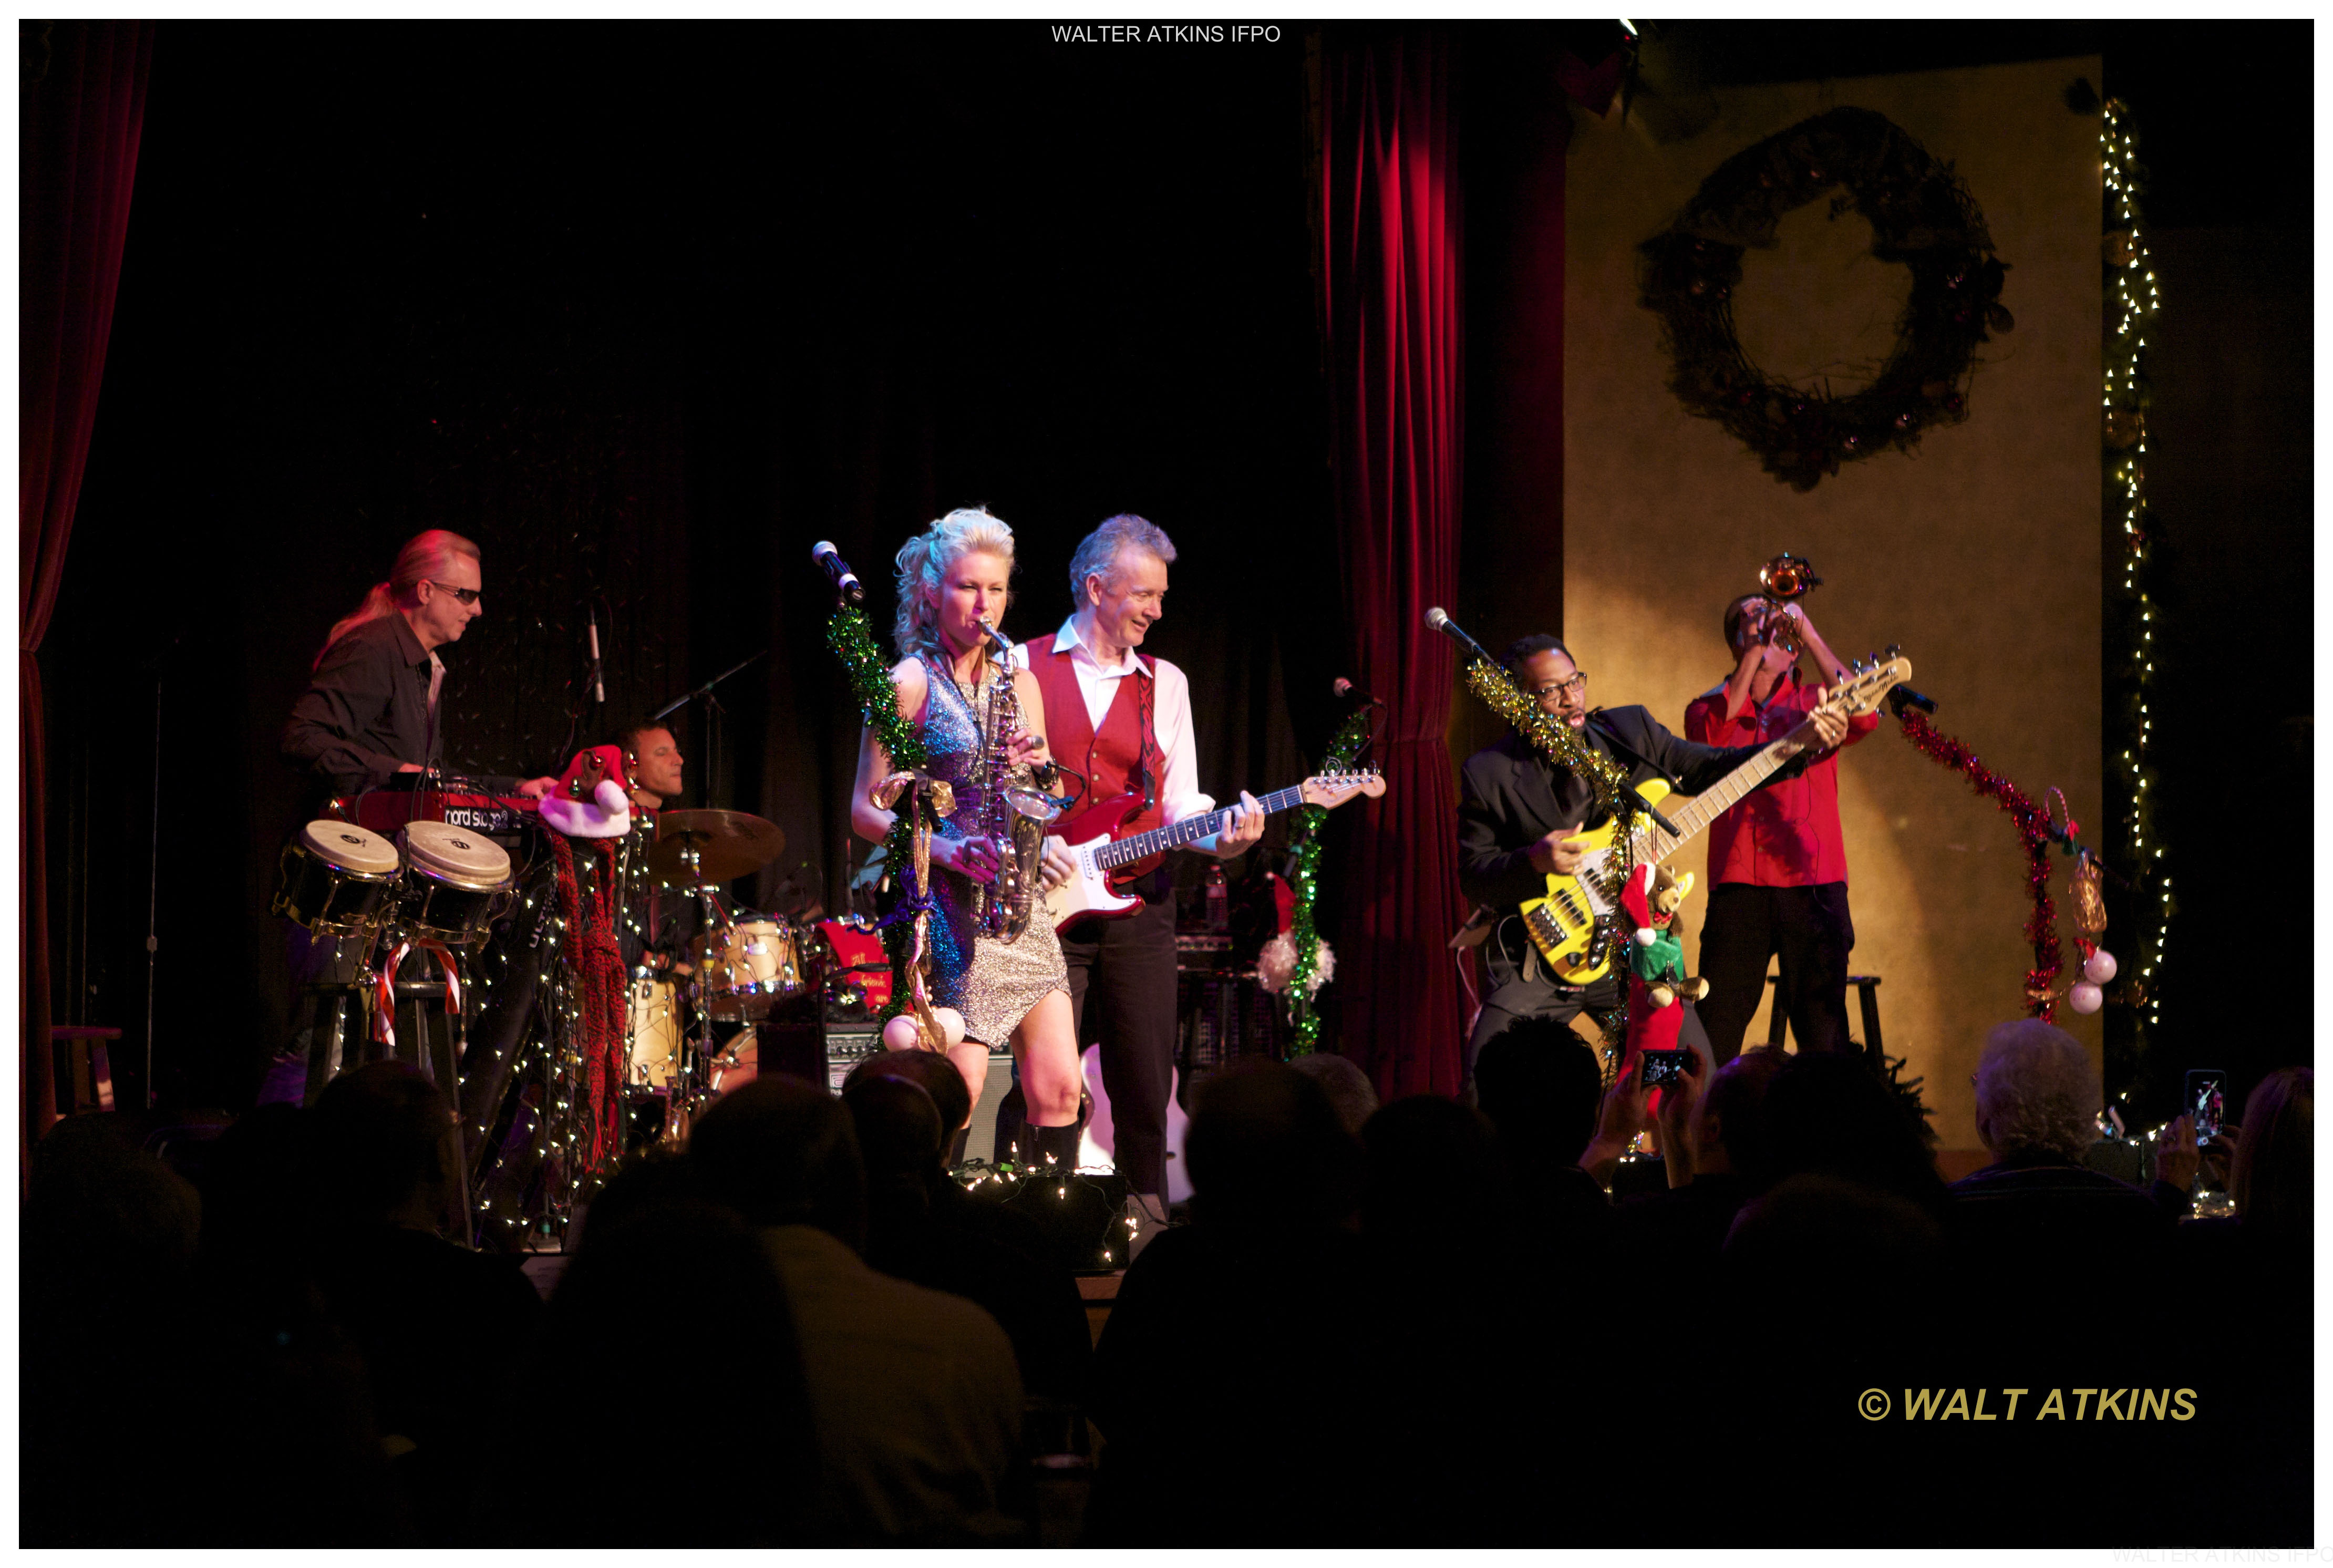 a Peter White Christmas at Yoshi's Oakland